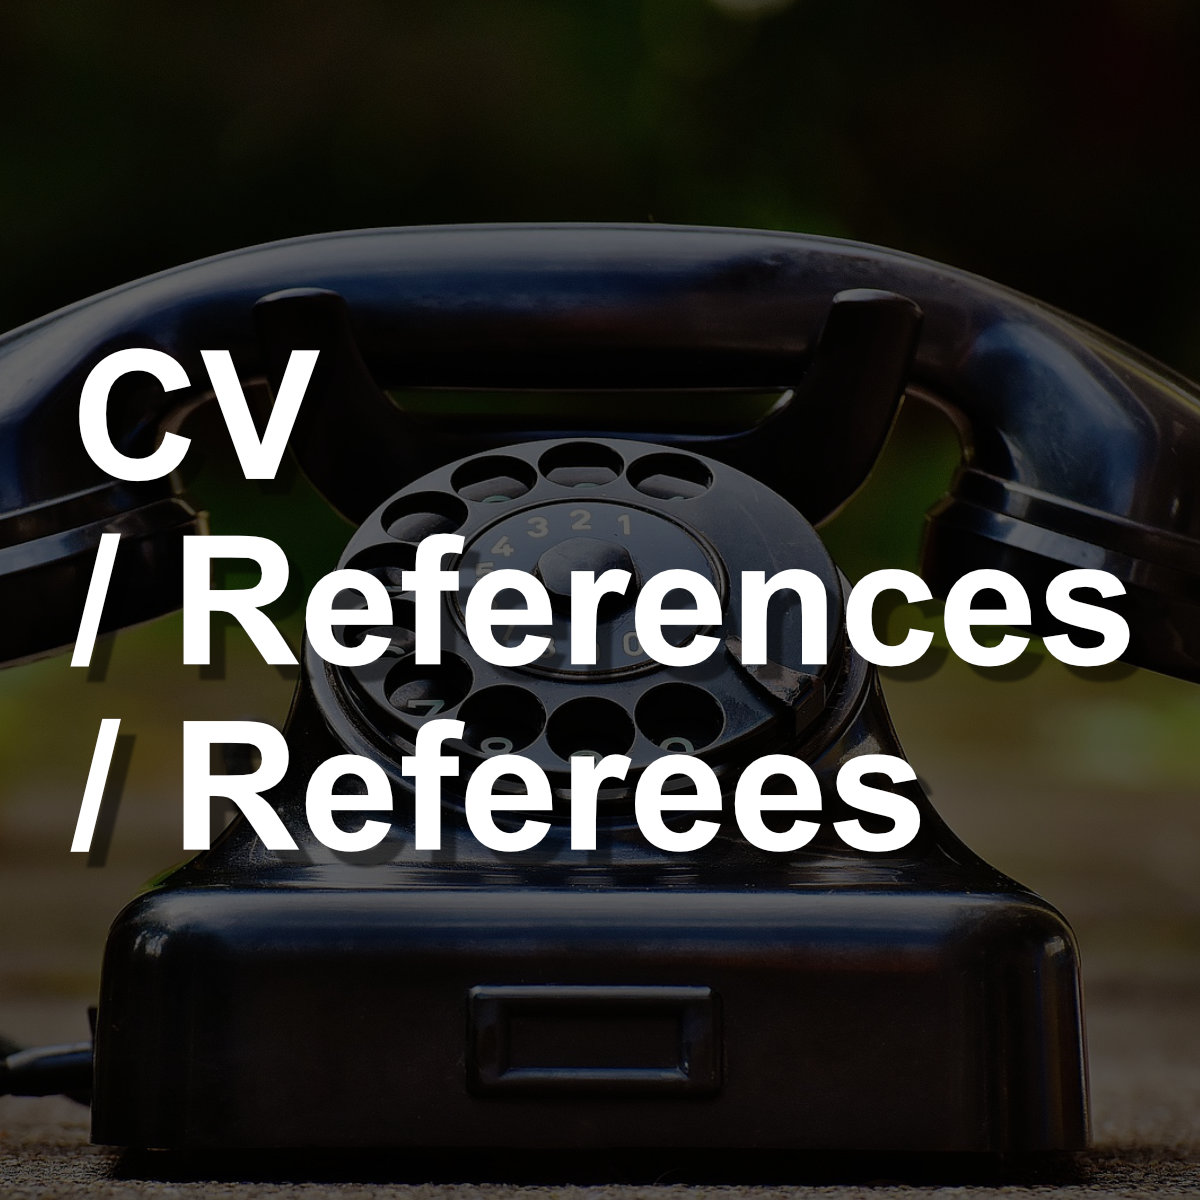 Get Great CV References Referees